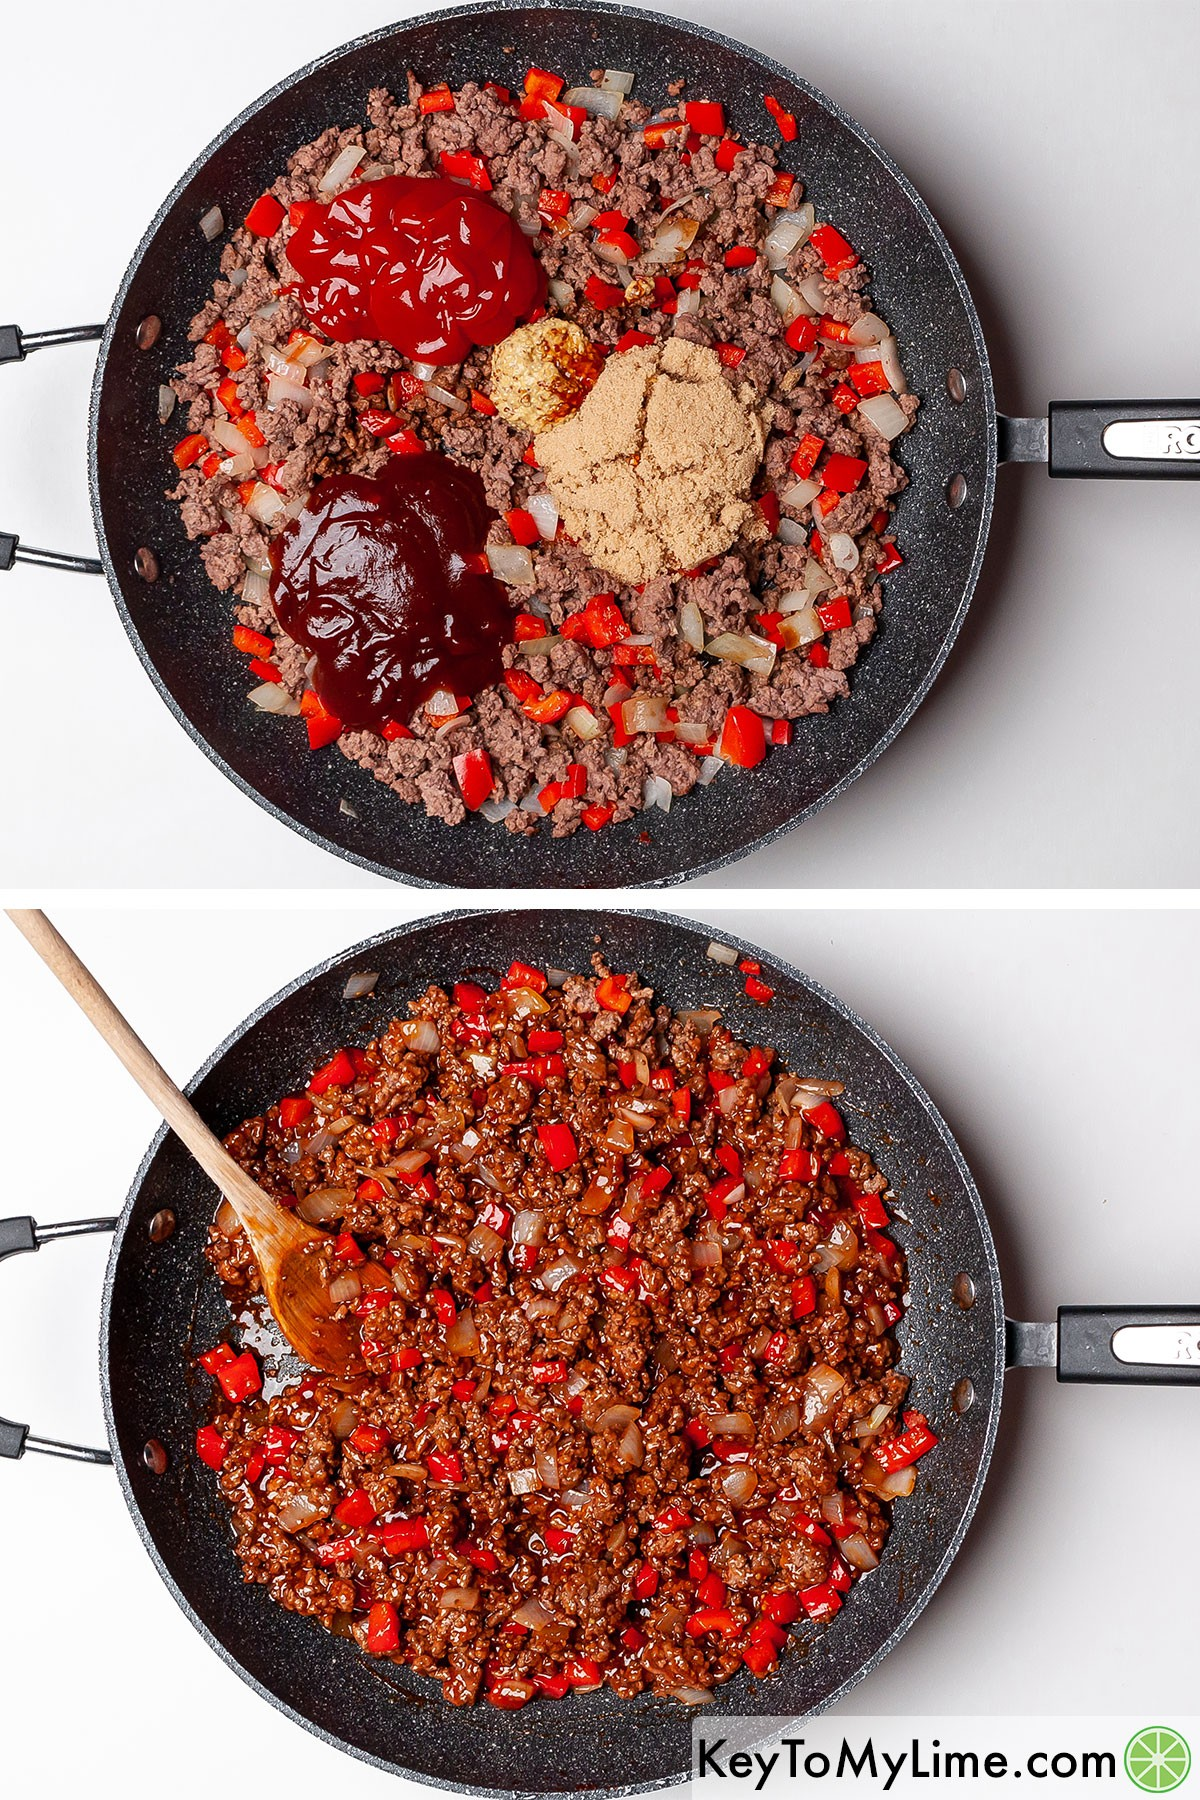 Mixing ketchup, BBQ sauce, and brown sugar into browned ground beef.